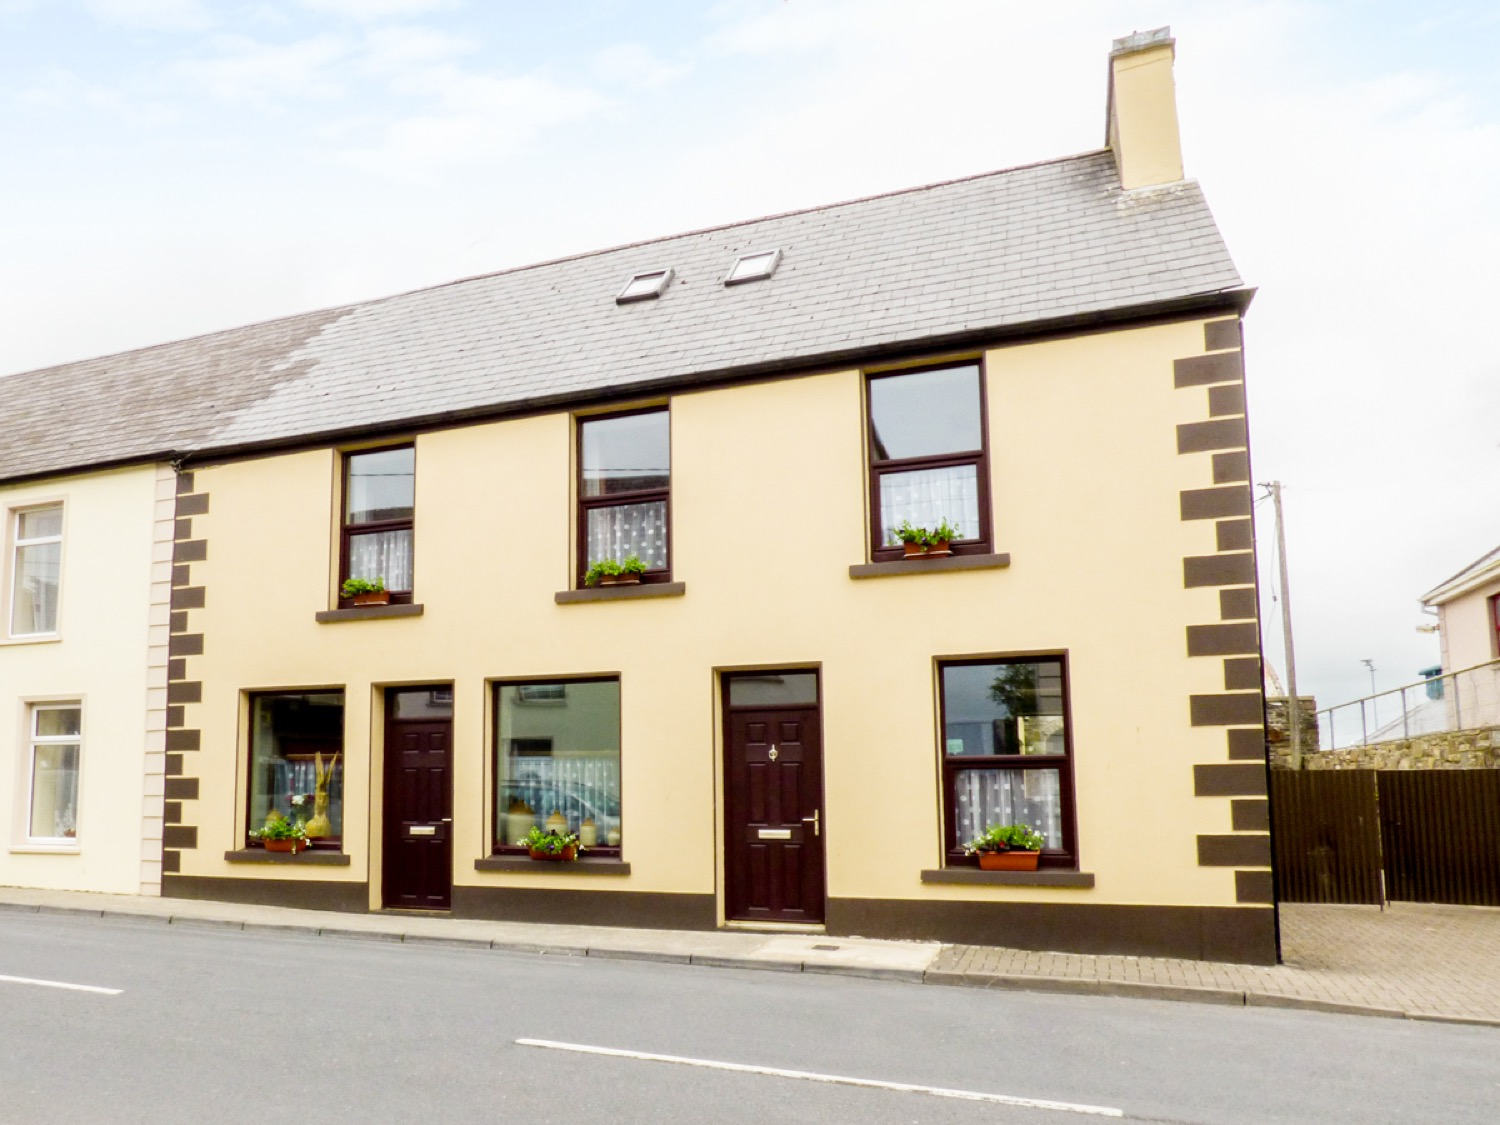 6 bedroom Cottage for rent in Kilmihil